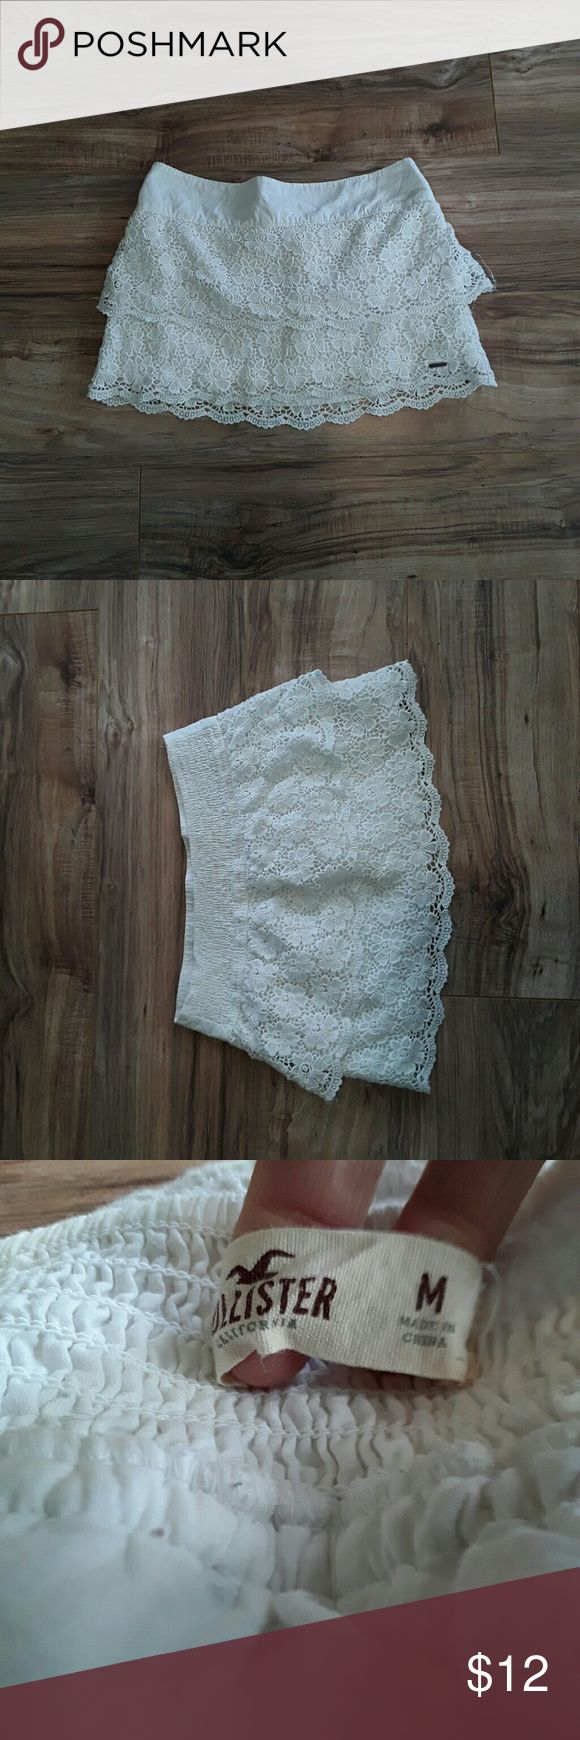 Lace hollister skirt White lace hollister skirt in excellent condition size medium Hollister Skirts Mini